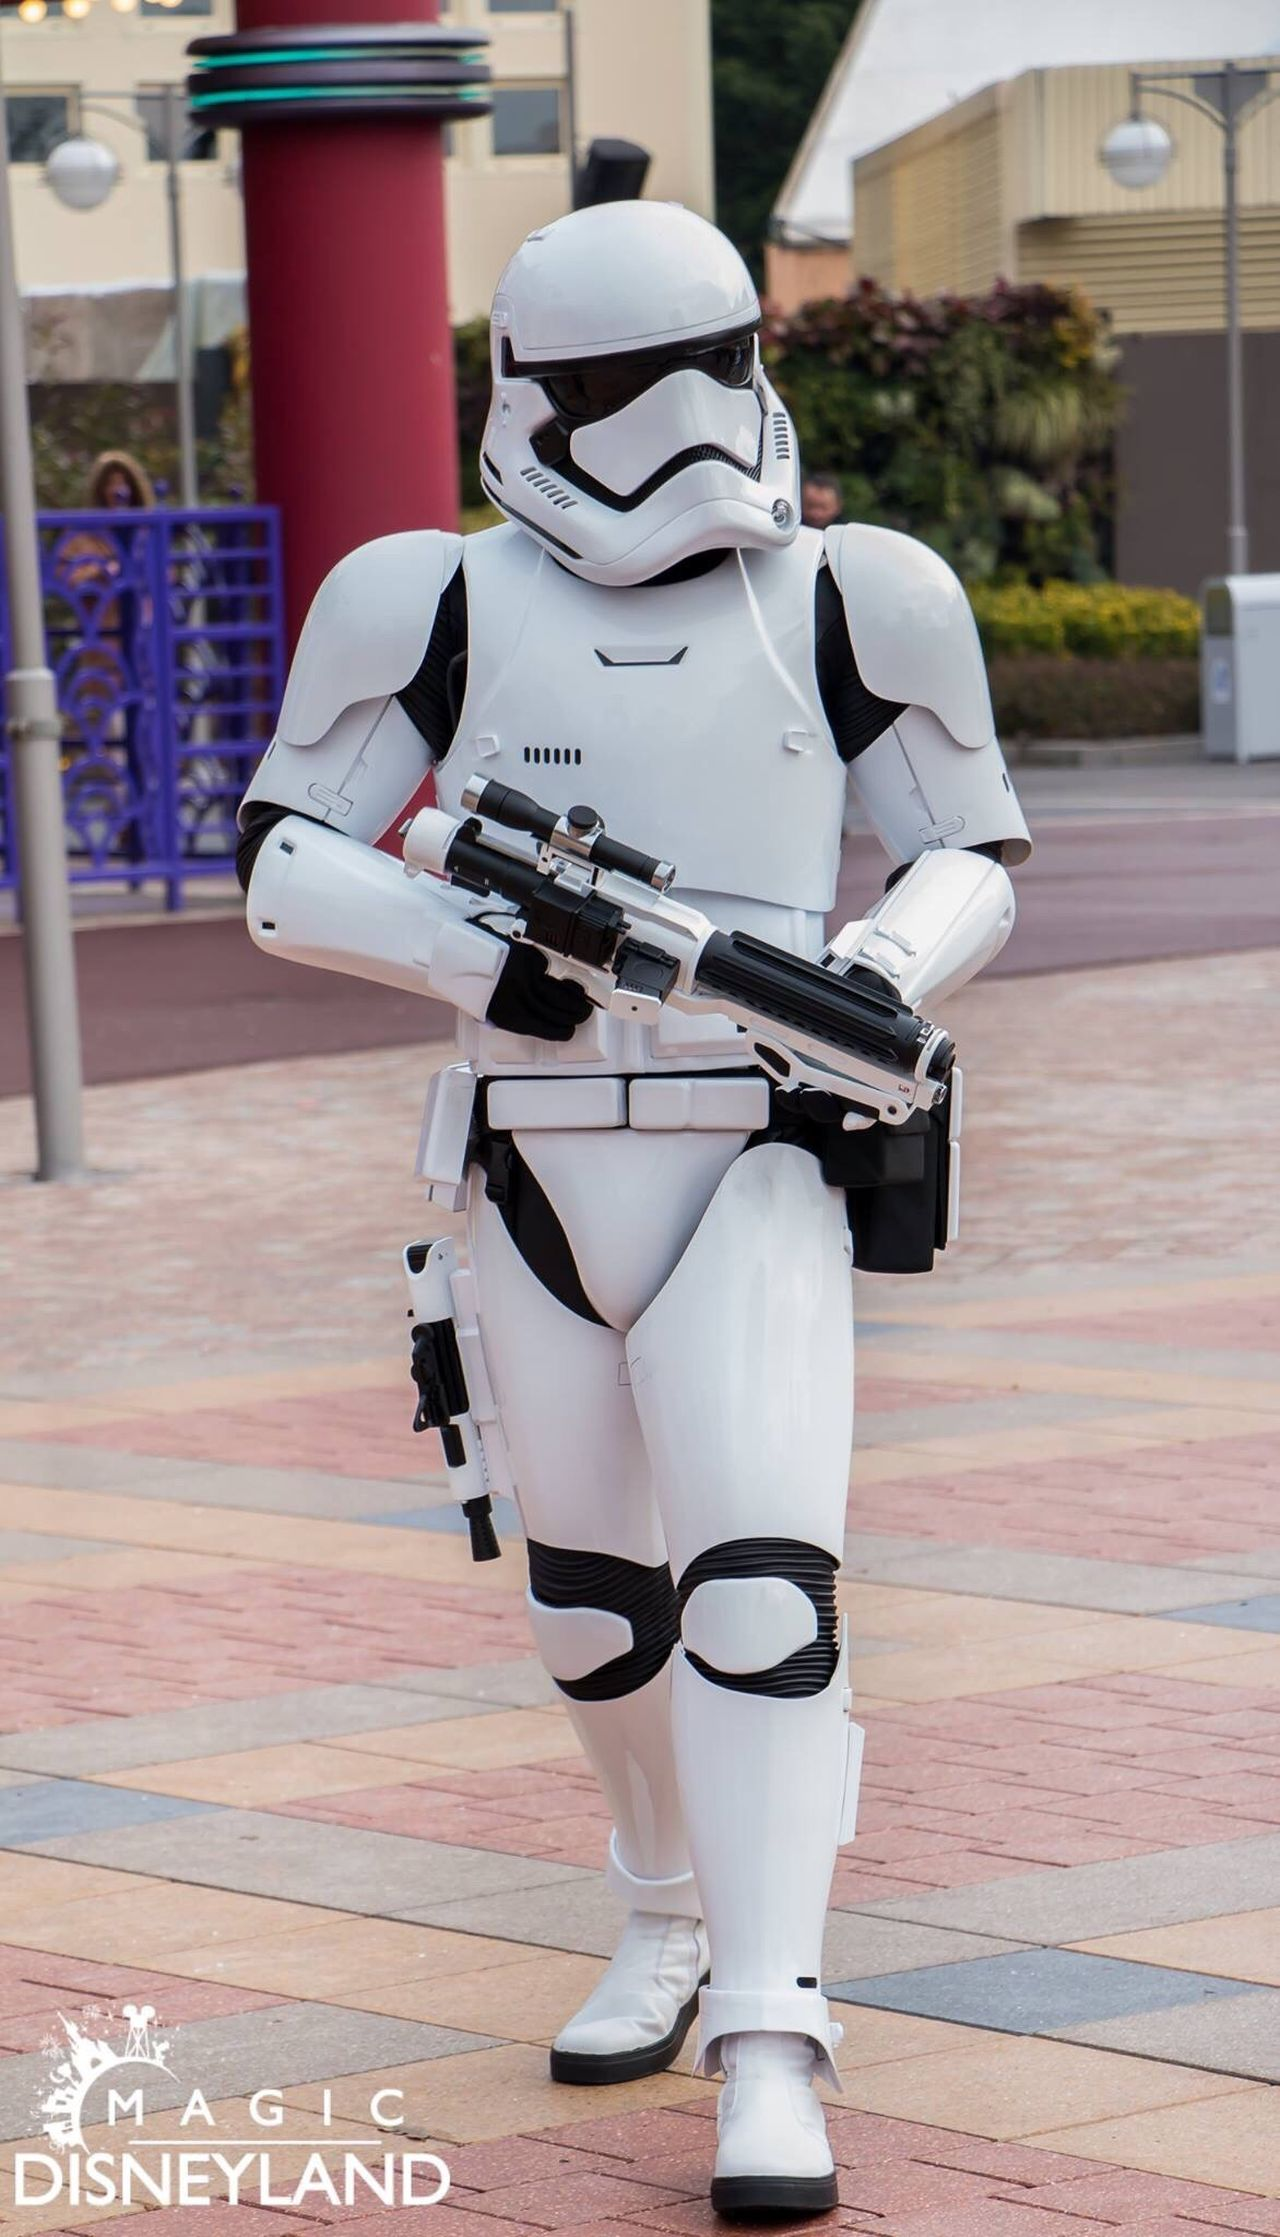 One Person Adults Only Protection Disneylandparis Waltdisney Disney Disneyland Resort Paris Starwars Disneyland Disneyland Paris